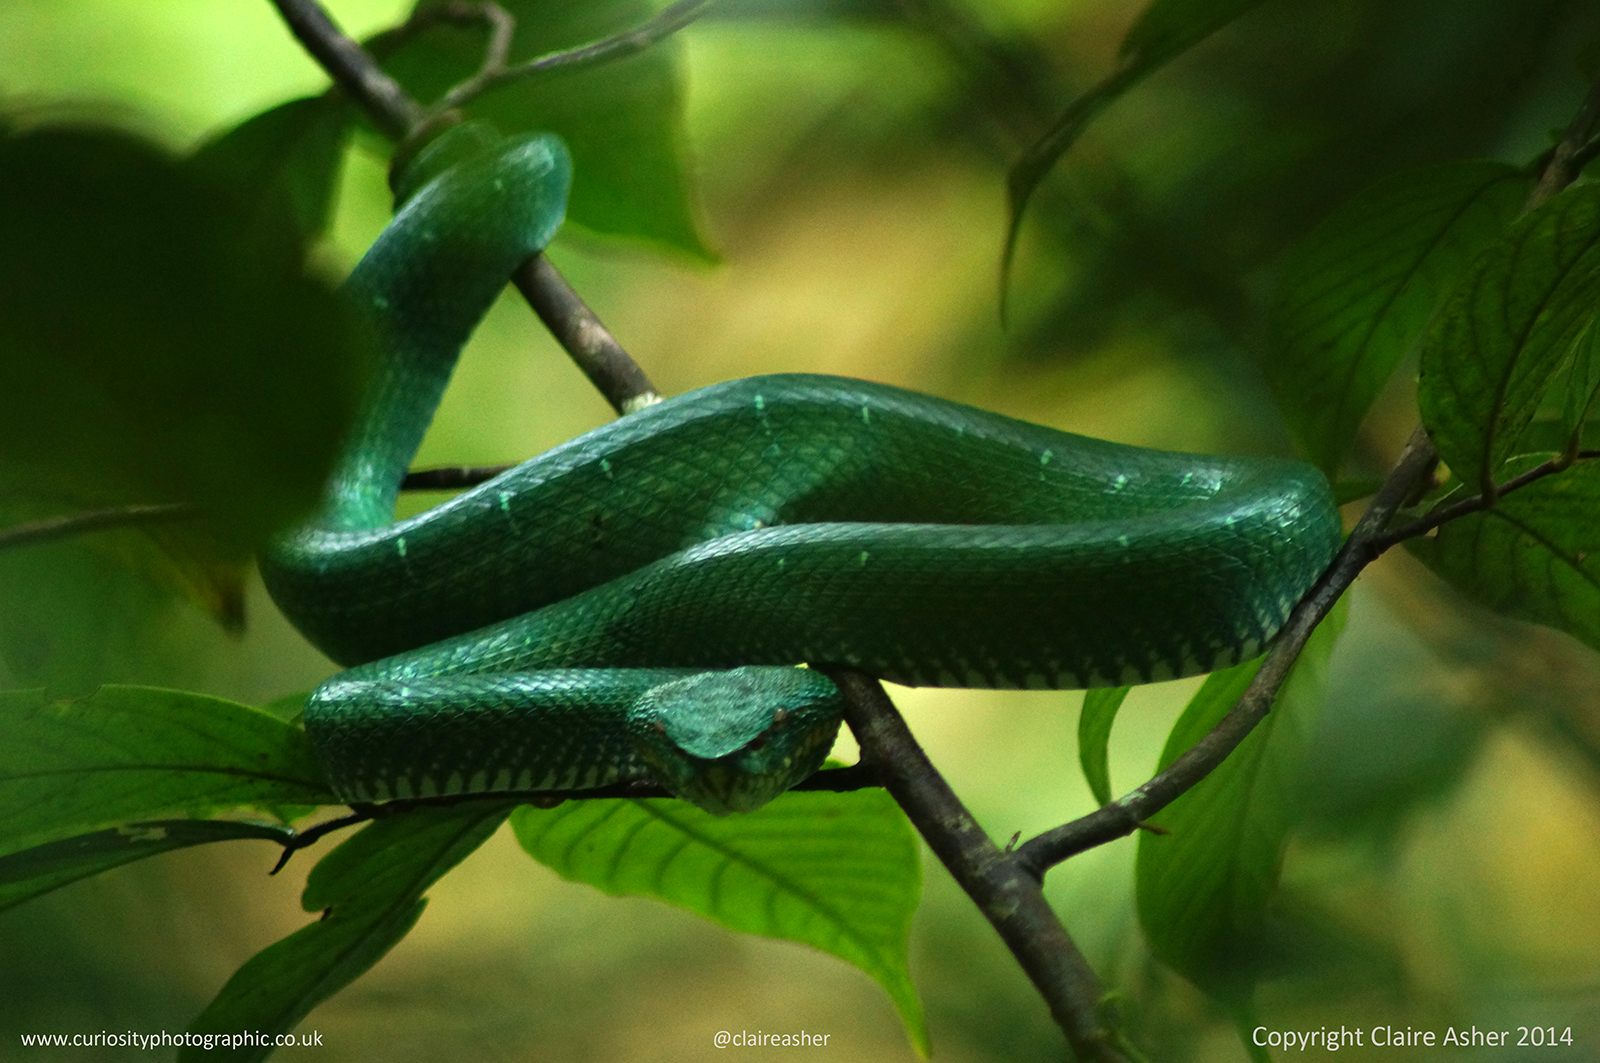 A green tree snake photographed in Borneo, Malaysia in 2014.